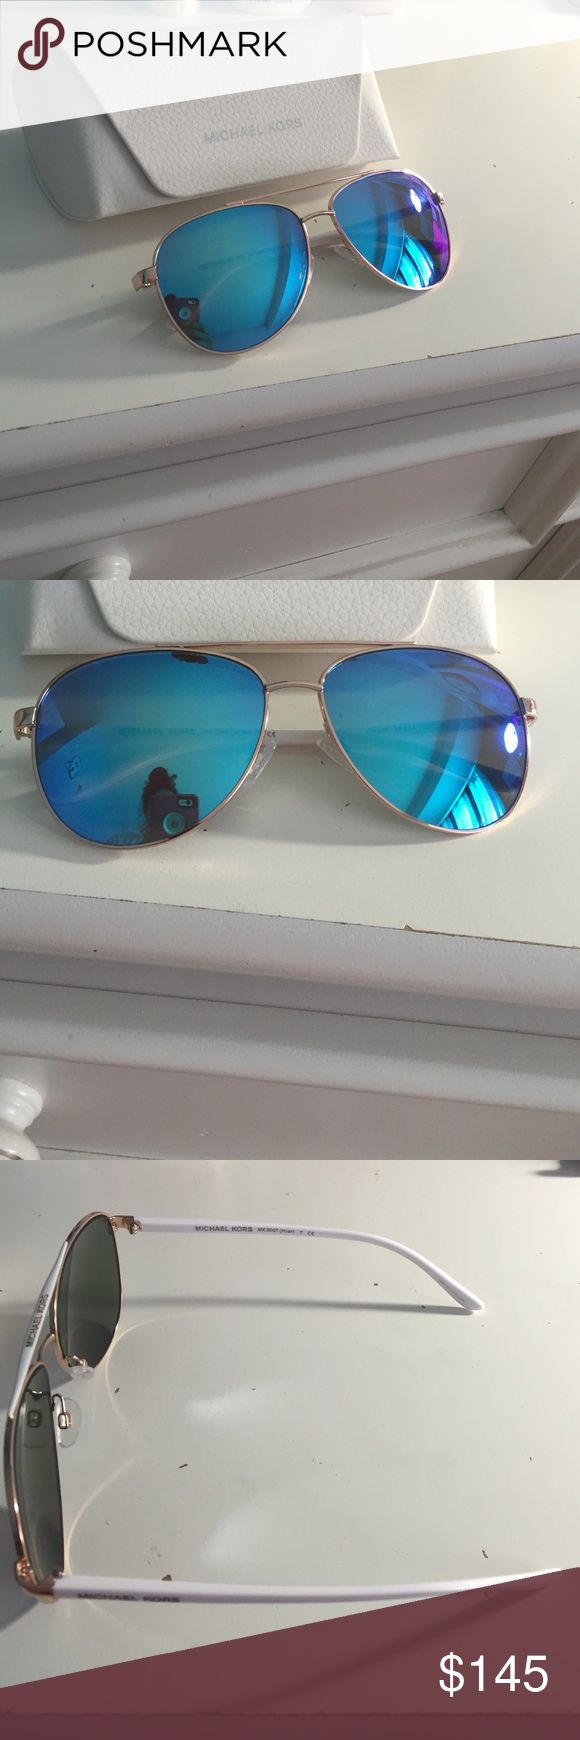 Michael Kors Blue Aviators Sunglasses These are MK 5007 Hvar these are *Brand NEW* never worn comes with MK white case and a Sunglass cleaning cloth Michael Kors Accessories Sunglasses